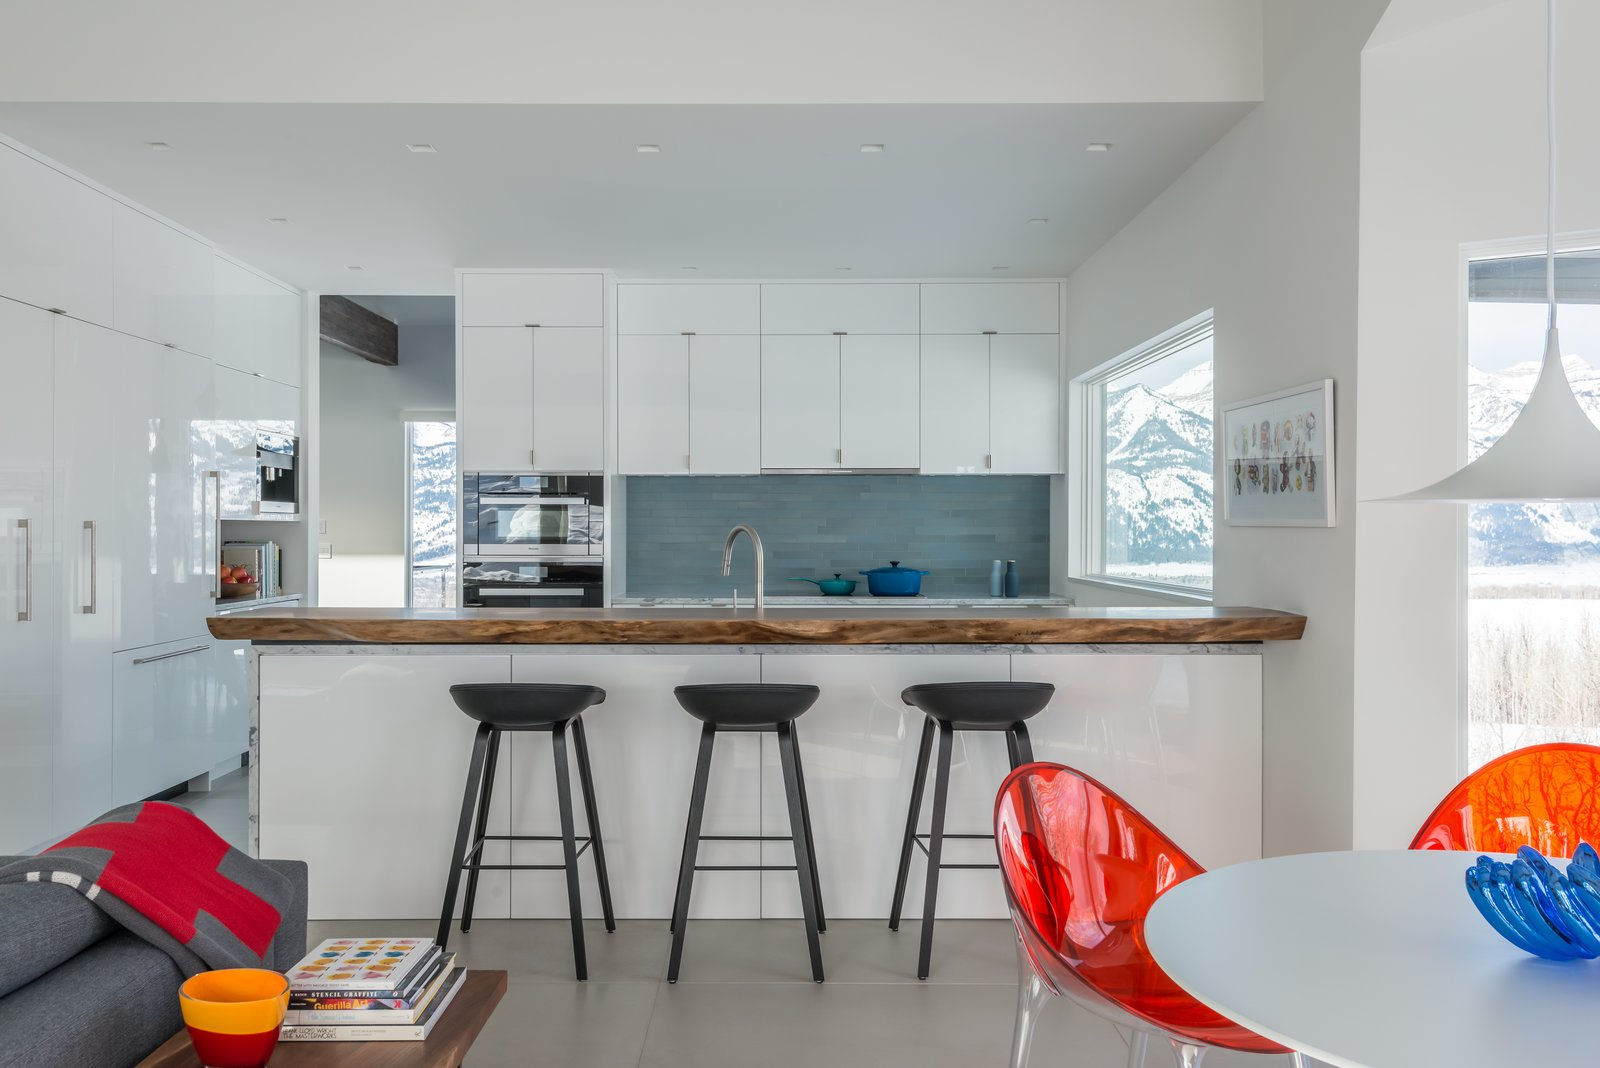 Kitchen cabinets are painted white and lacquered with an automotive finish.  Heath Tile adds color in the backsplash while a live-edge walnut counter adds depth to the room. San Francisco Meets Jackson Hole in a Modern Renovation by Carney Logan Burke Architects